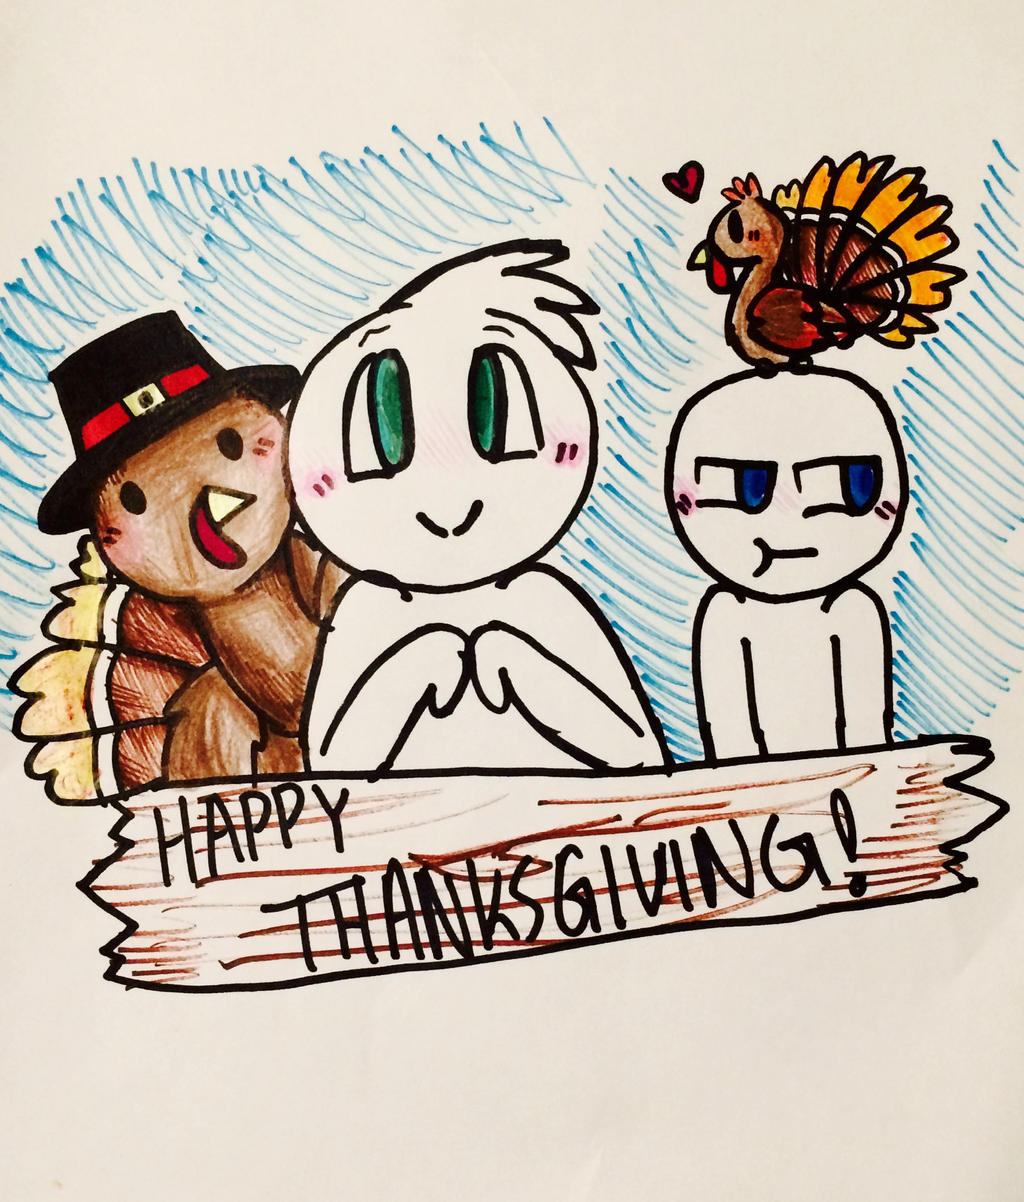 Happy Thanksgiving! by veeeester400